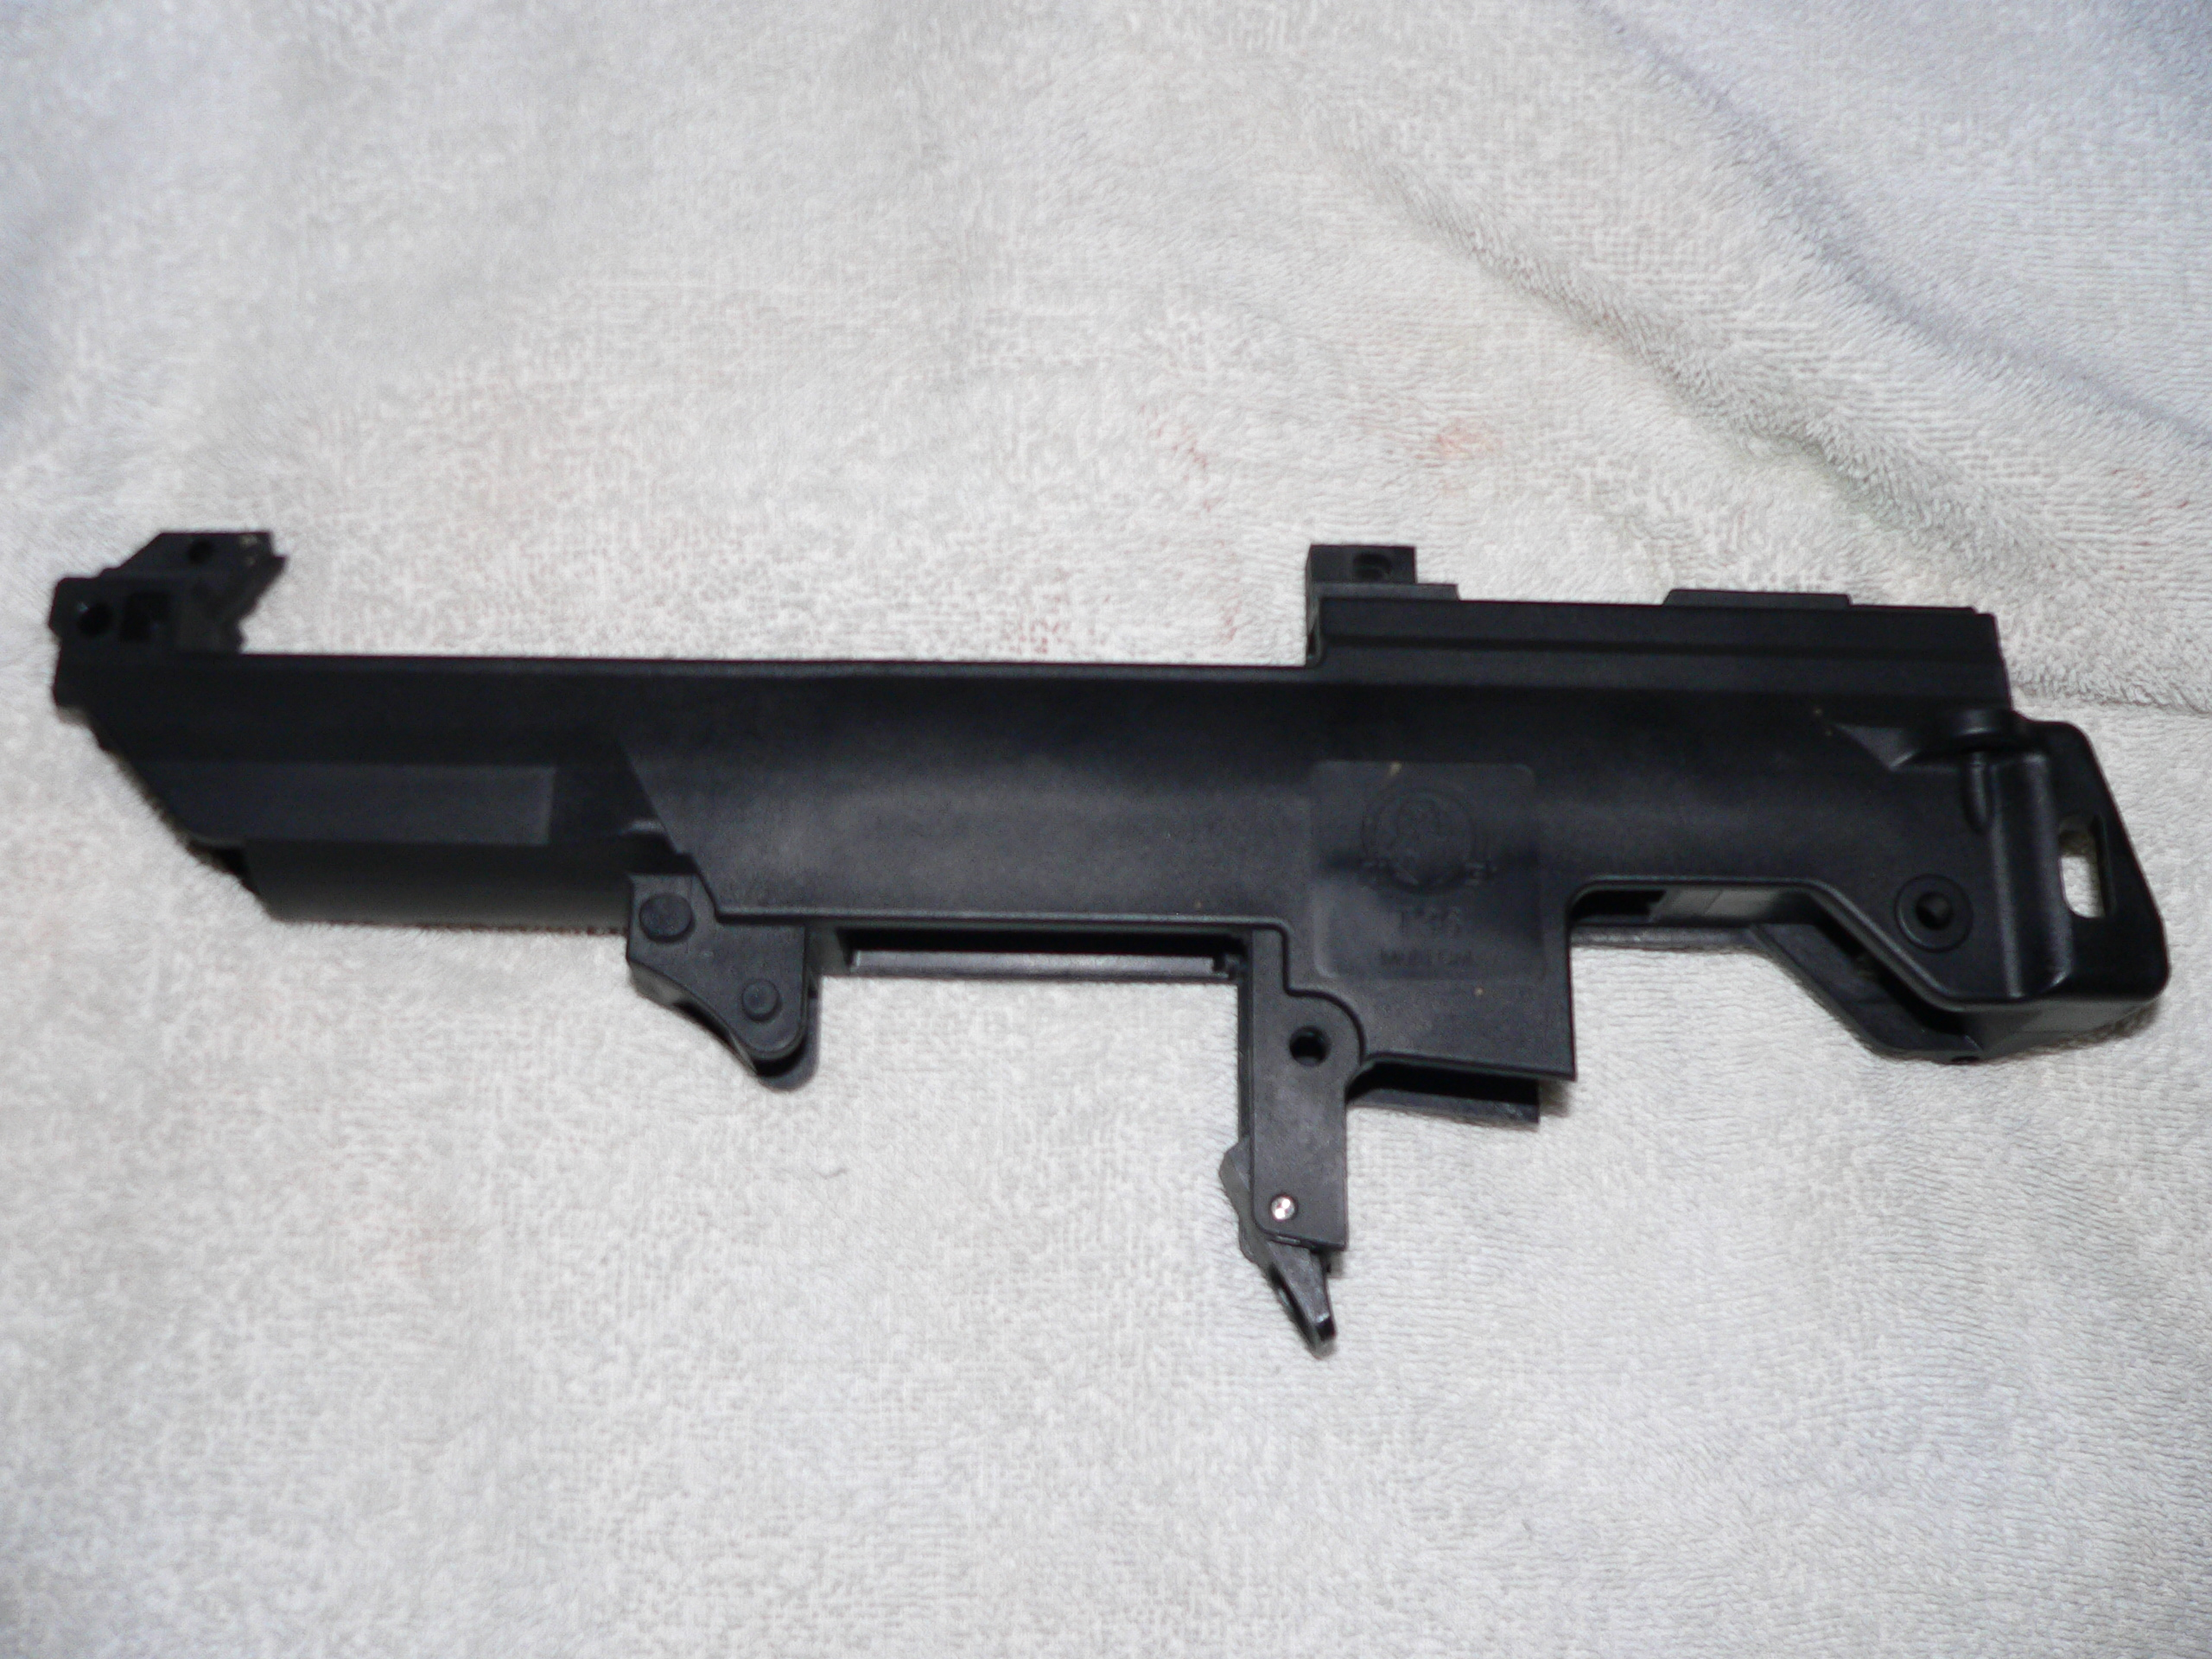 WTS: Brand New Virgin Tommy Built T36 Receiver 0.00 No Waiting/PICS-p1030059.jpg